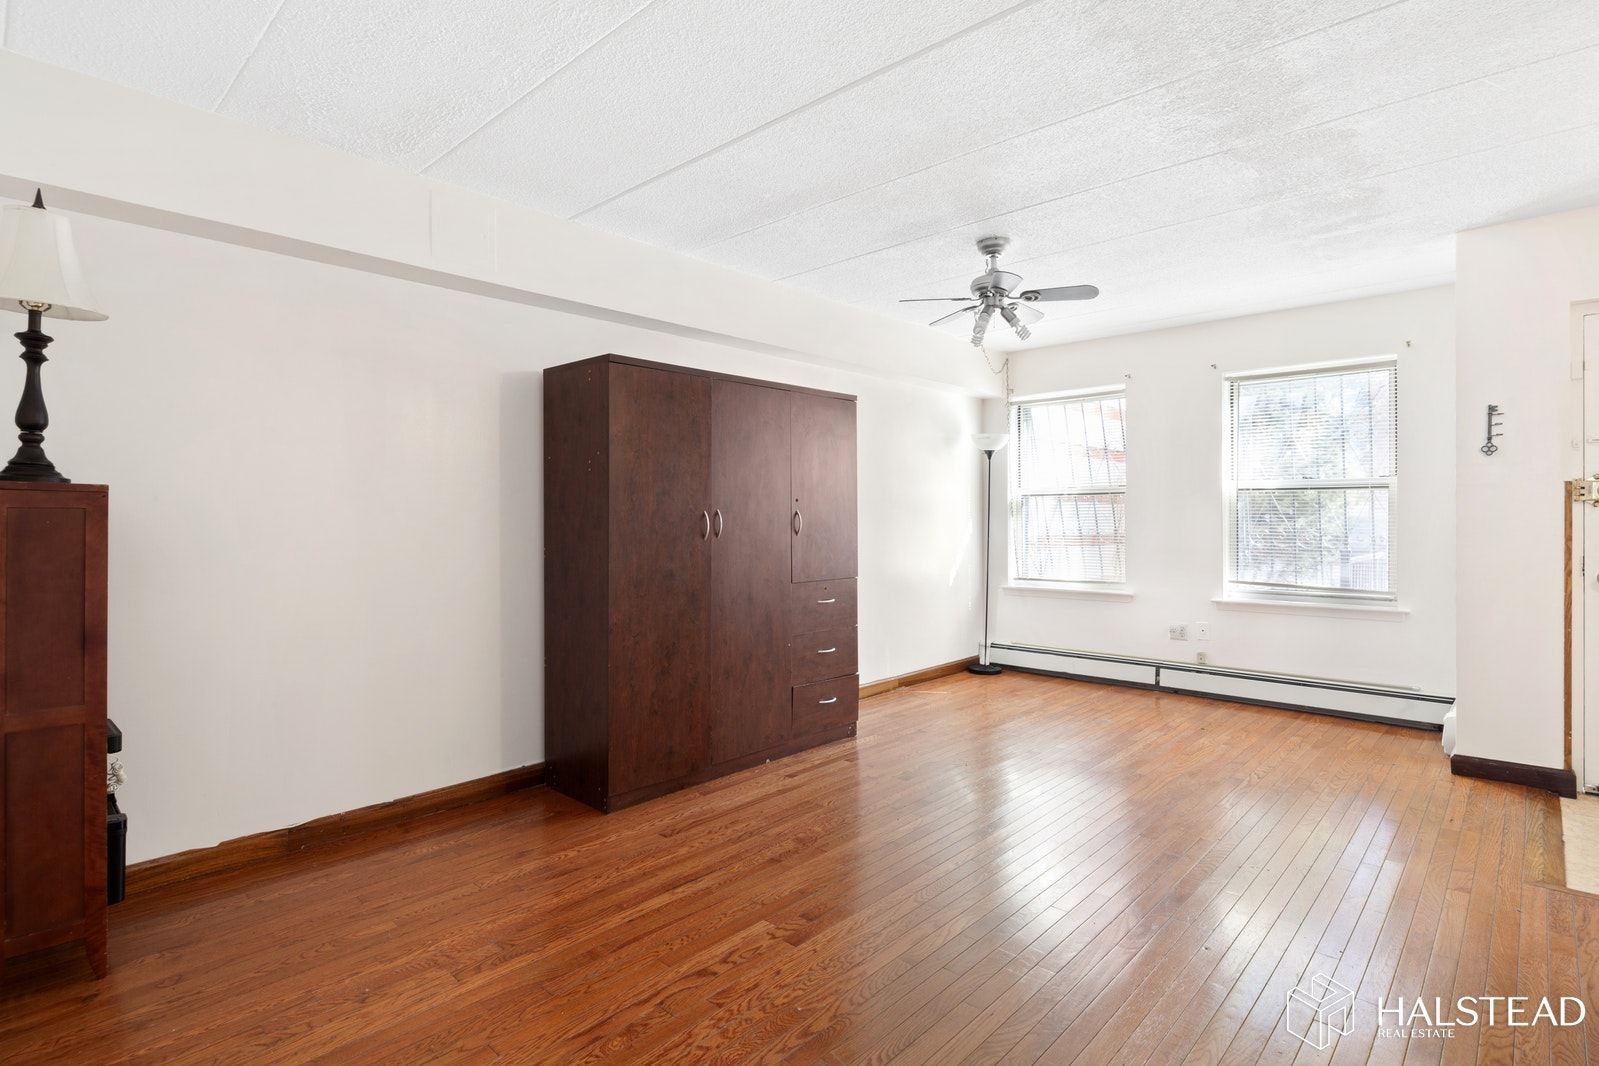 2579 Frederick Douglass B B, Upper Manhattan, NYC, 10030, $765,000, Sold Property, Halstead Real Estate, Photo 2